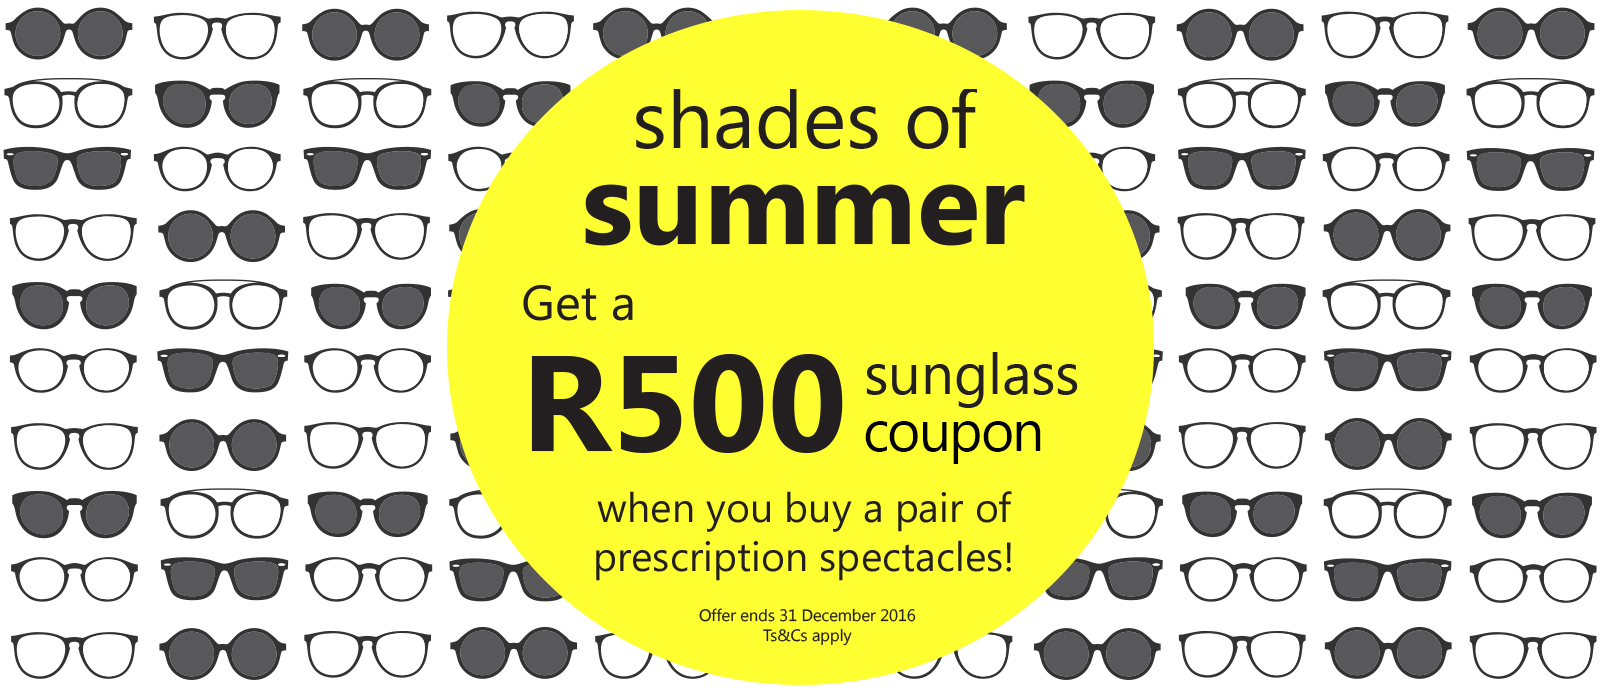 TO BUY: Get R500 OFF sunglasses when you buy prescription spectacles!